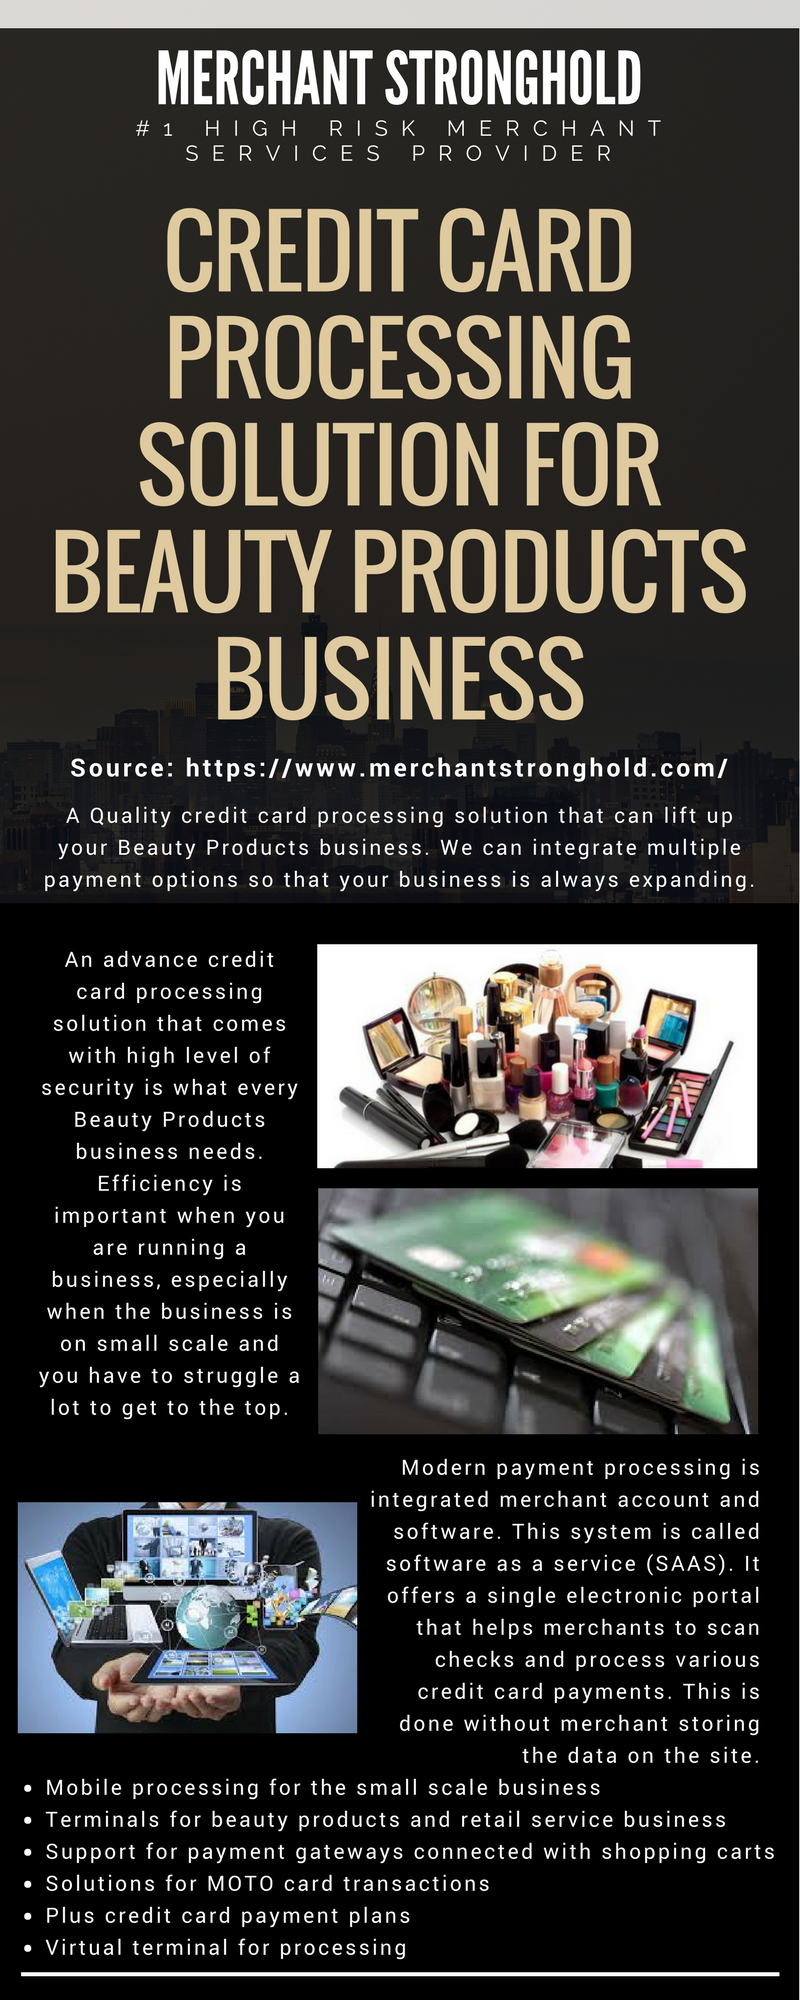 Credit card processing solution for beauty products business credit card processing solution for beauty products business credit card processing pinterest high risk and merchant account colourmoves